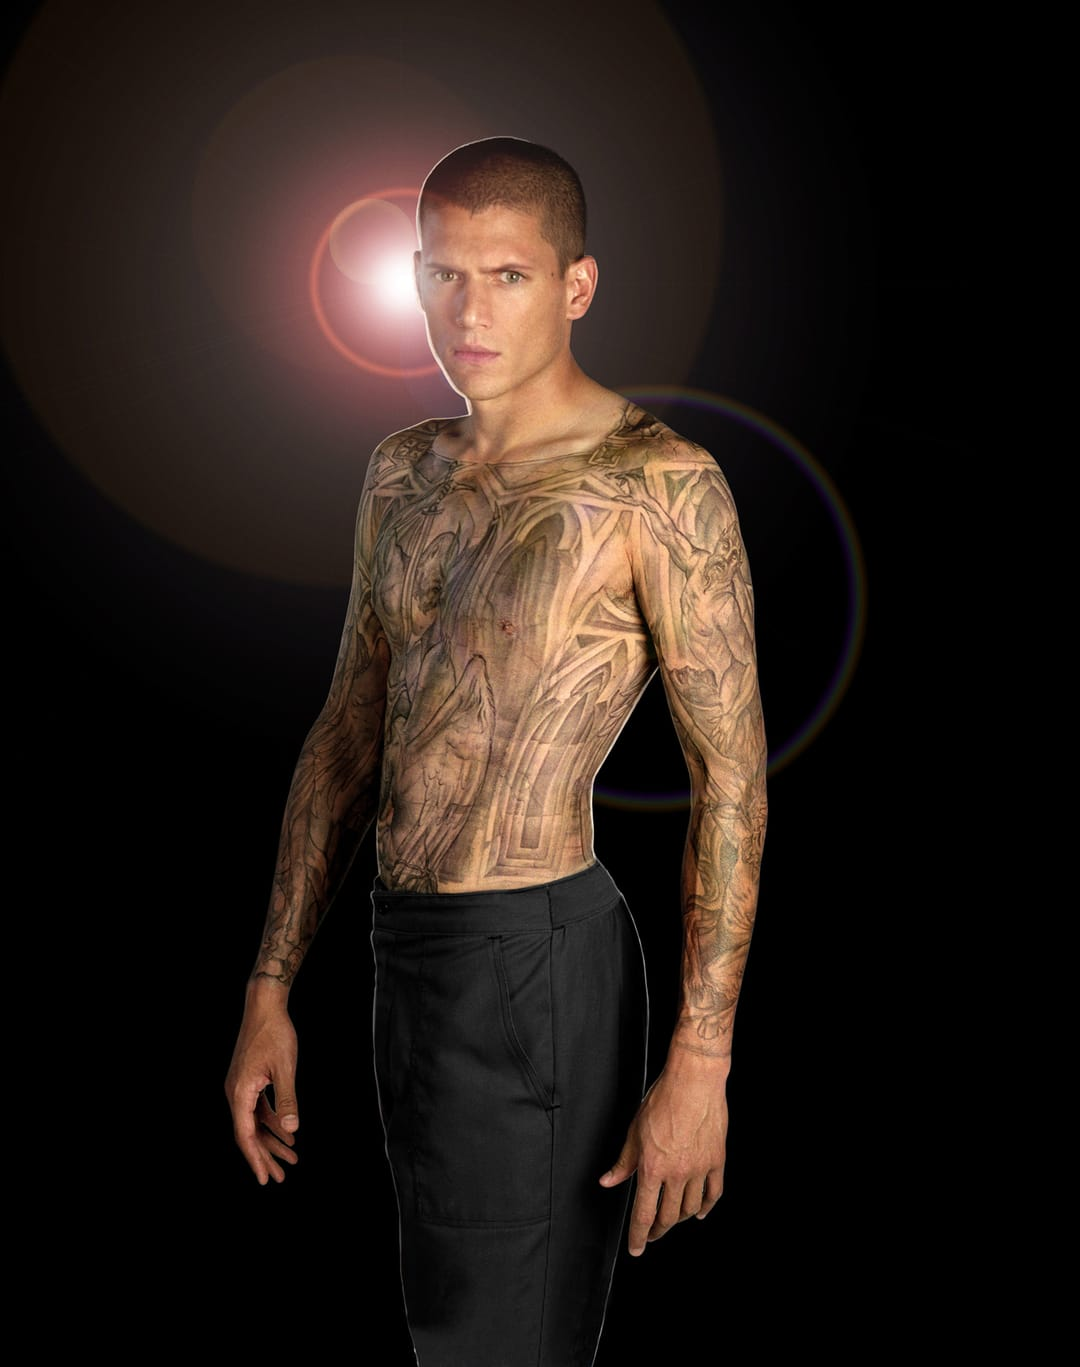 The fake bodysuit had to be scrubbed off and could last weeks if left on, Michael Schofield and his Prison Break tattoo #prisonbreak #michaelschofield